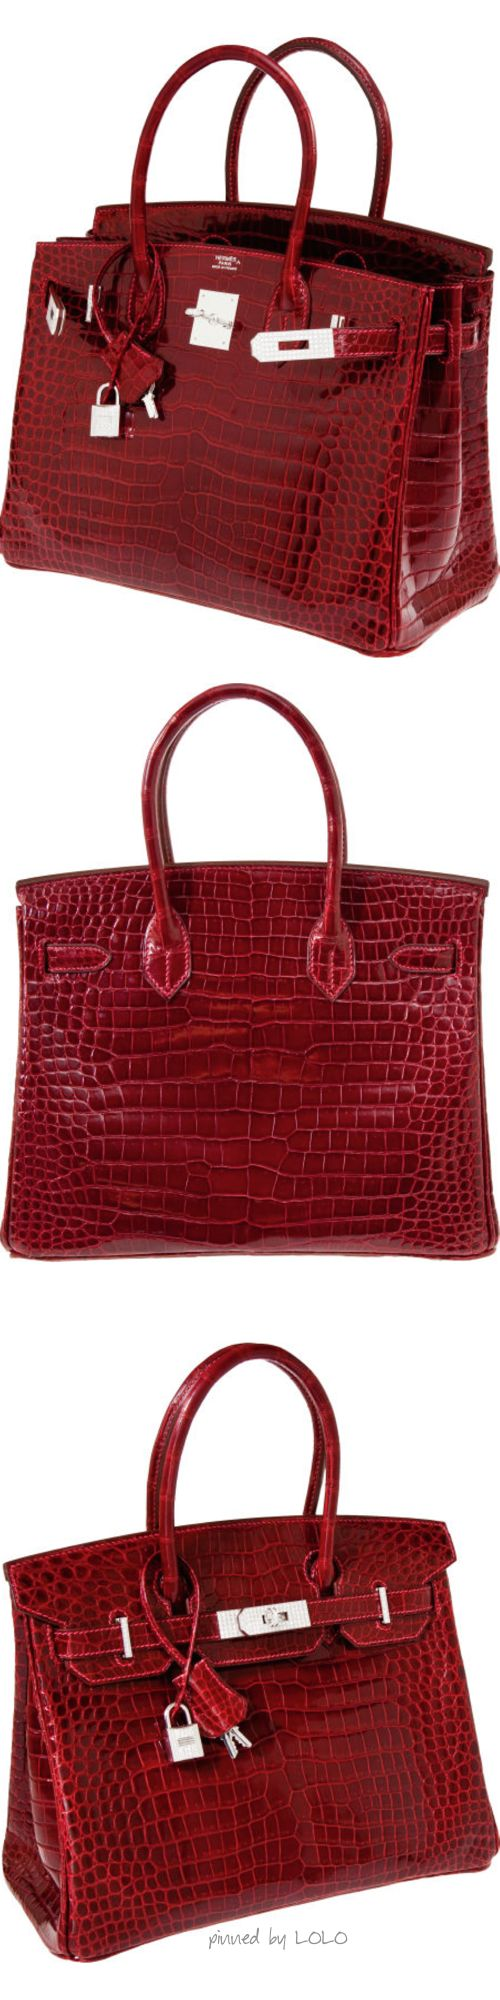 Billionaire Club / karen cox. The Glamorous Life.  Hermes Crocodile Birkin with White Gold & Diamond Hardware